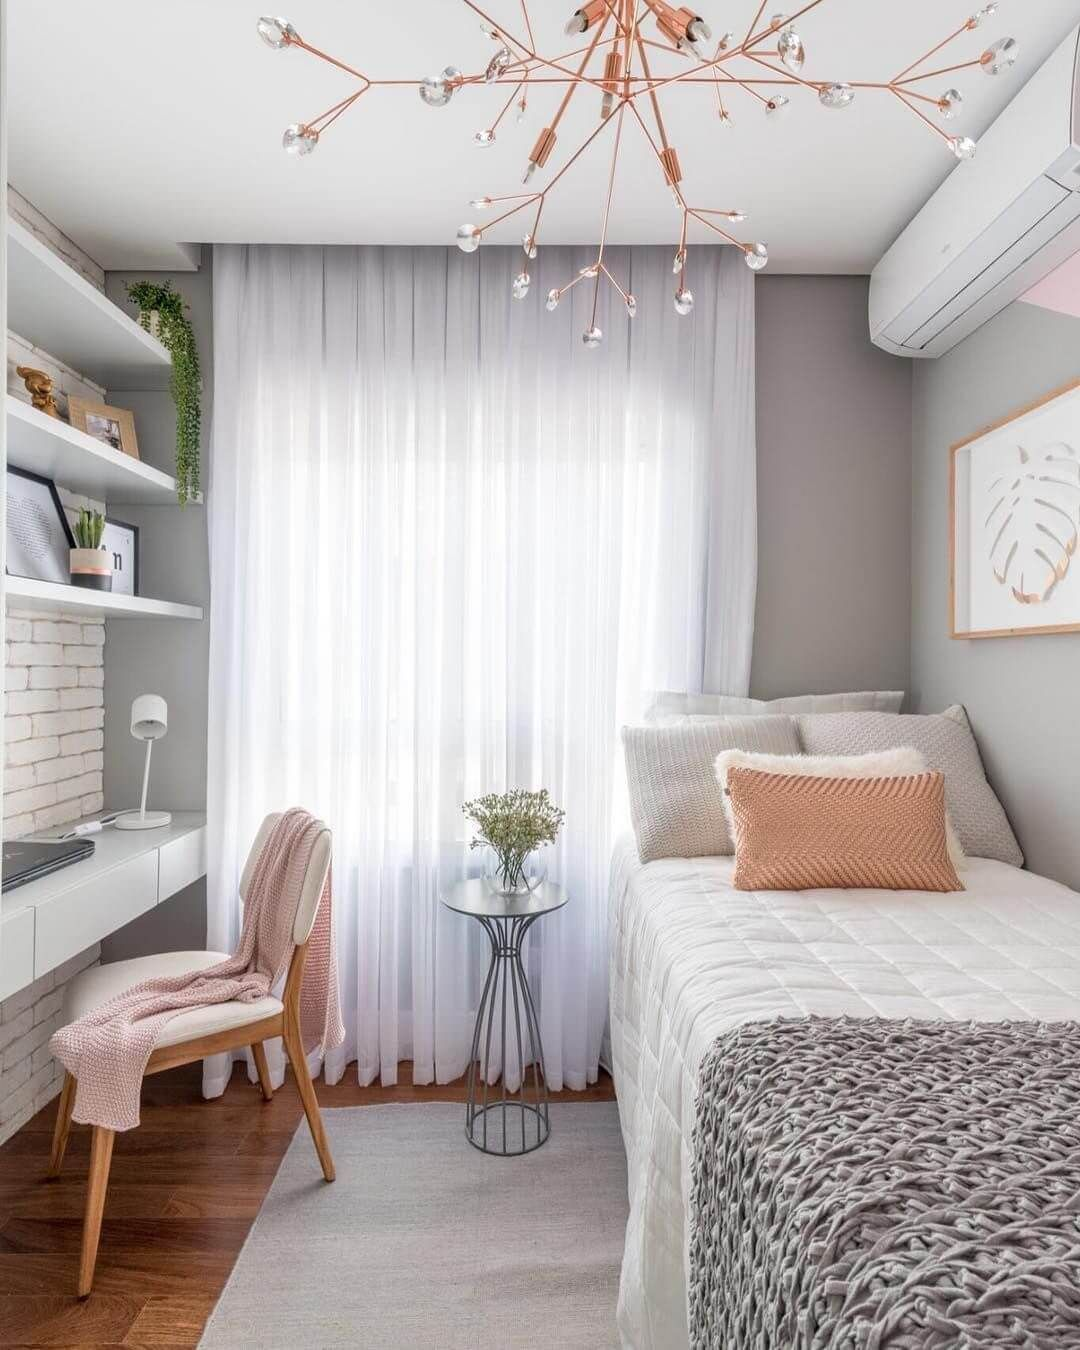 25 Small Bedroom Ideas That Are Look Stylishly & Space ... on Teenager Small Space Small Bedroom Design  id=62274